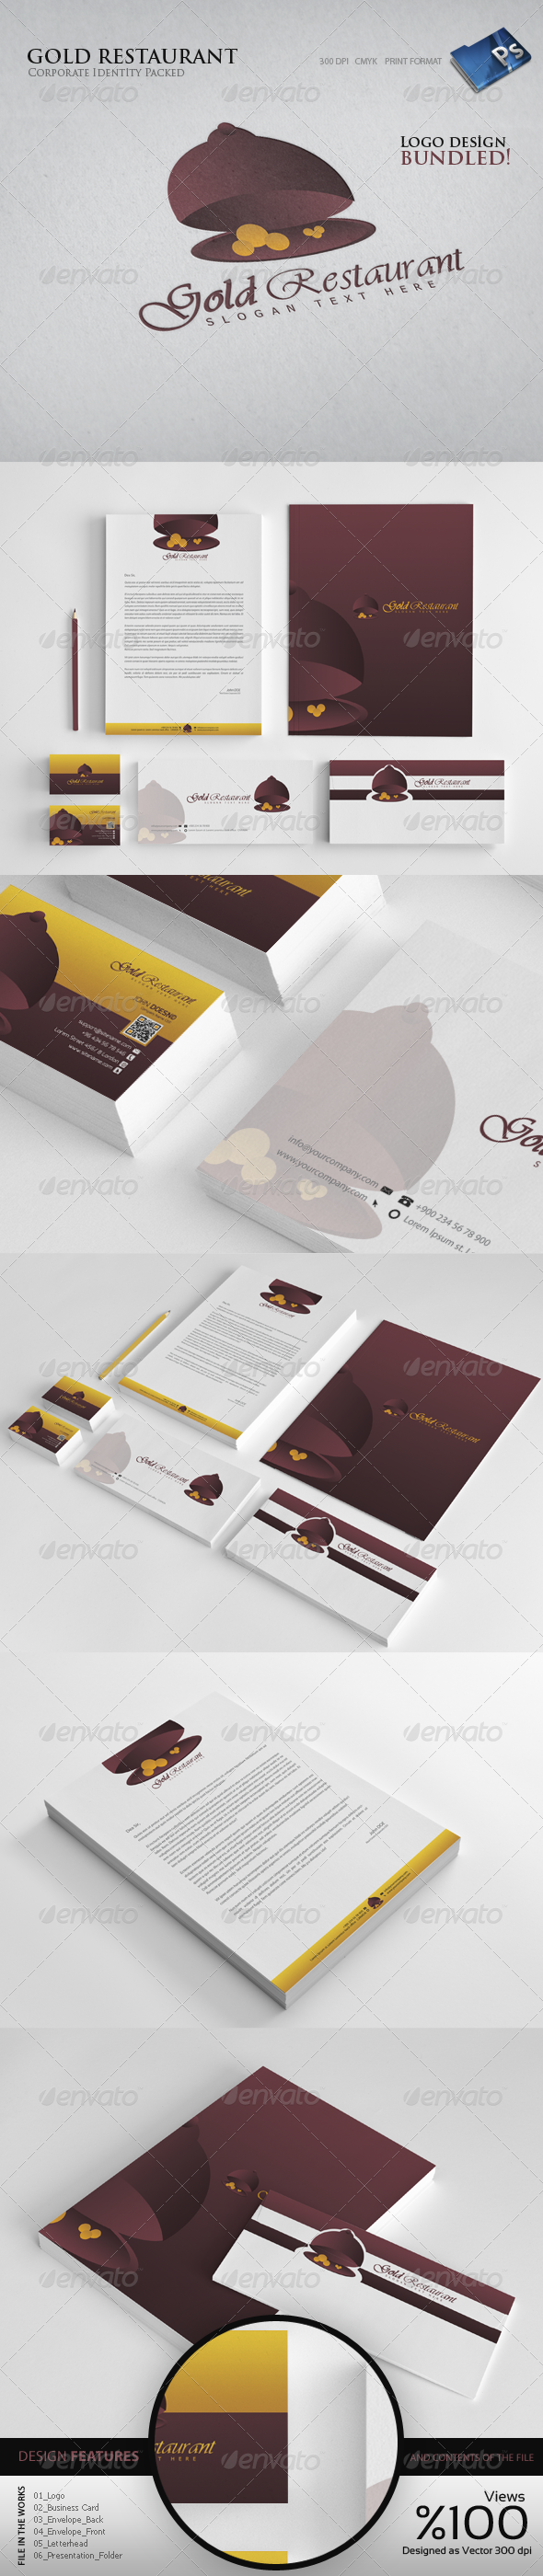 Gold Reustrant  - Corporate Identity - Stationery Print Templates